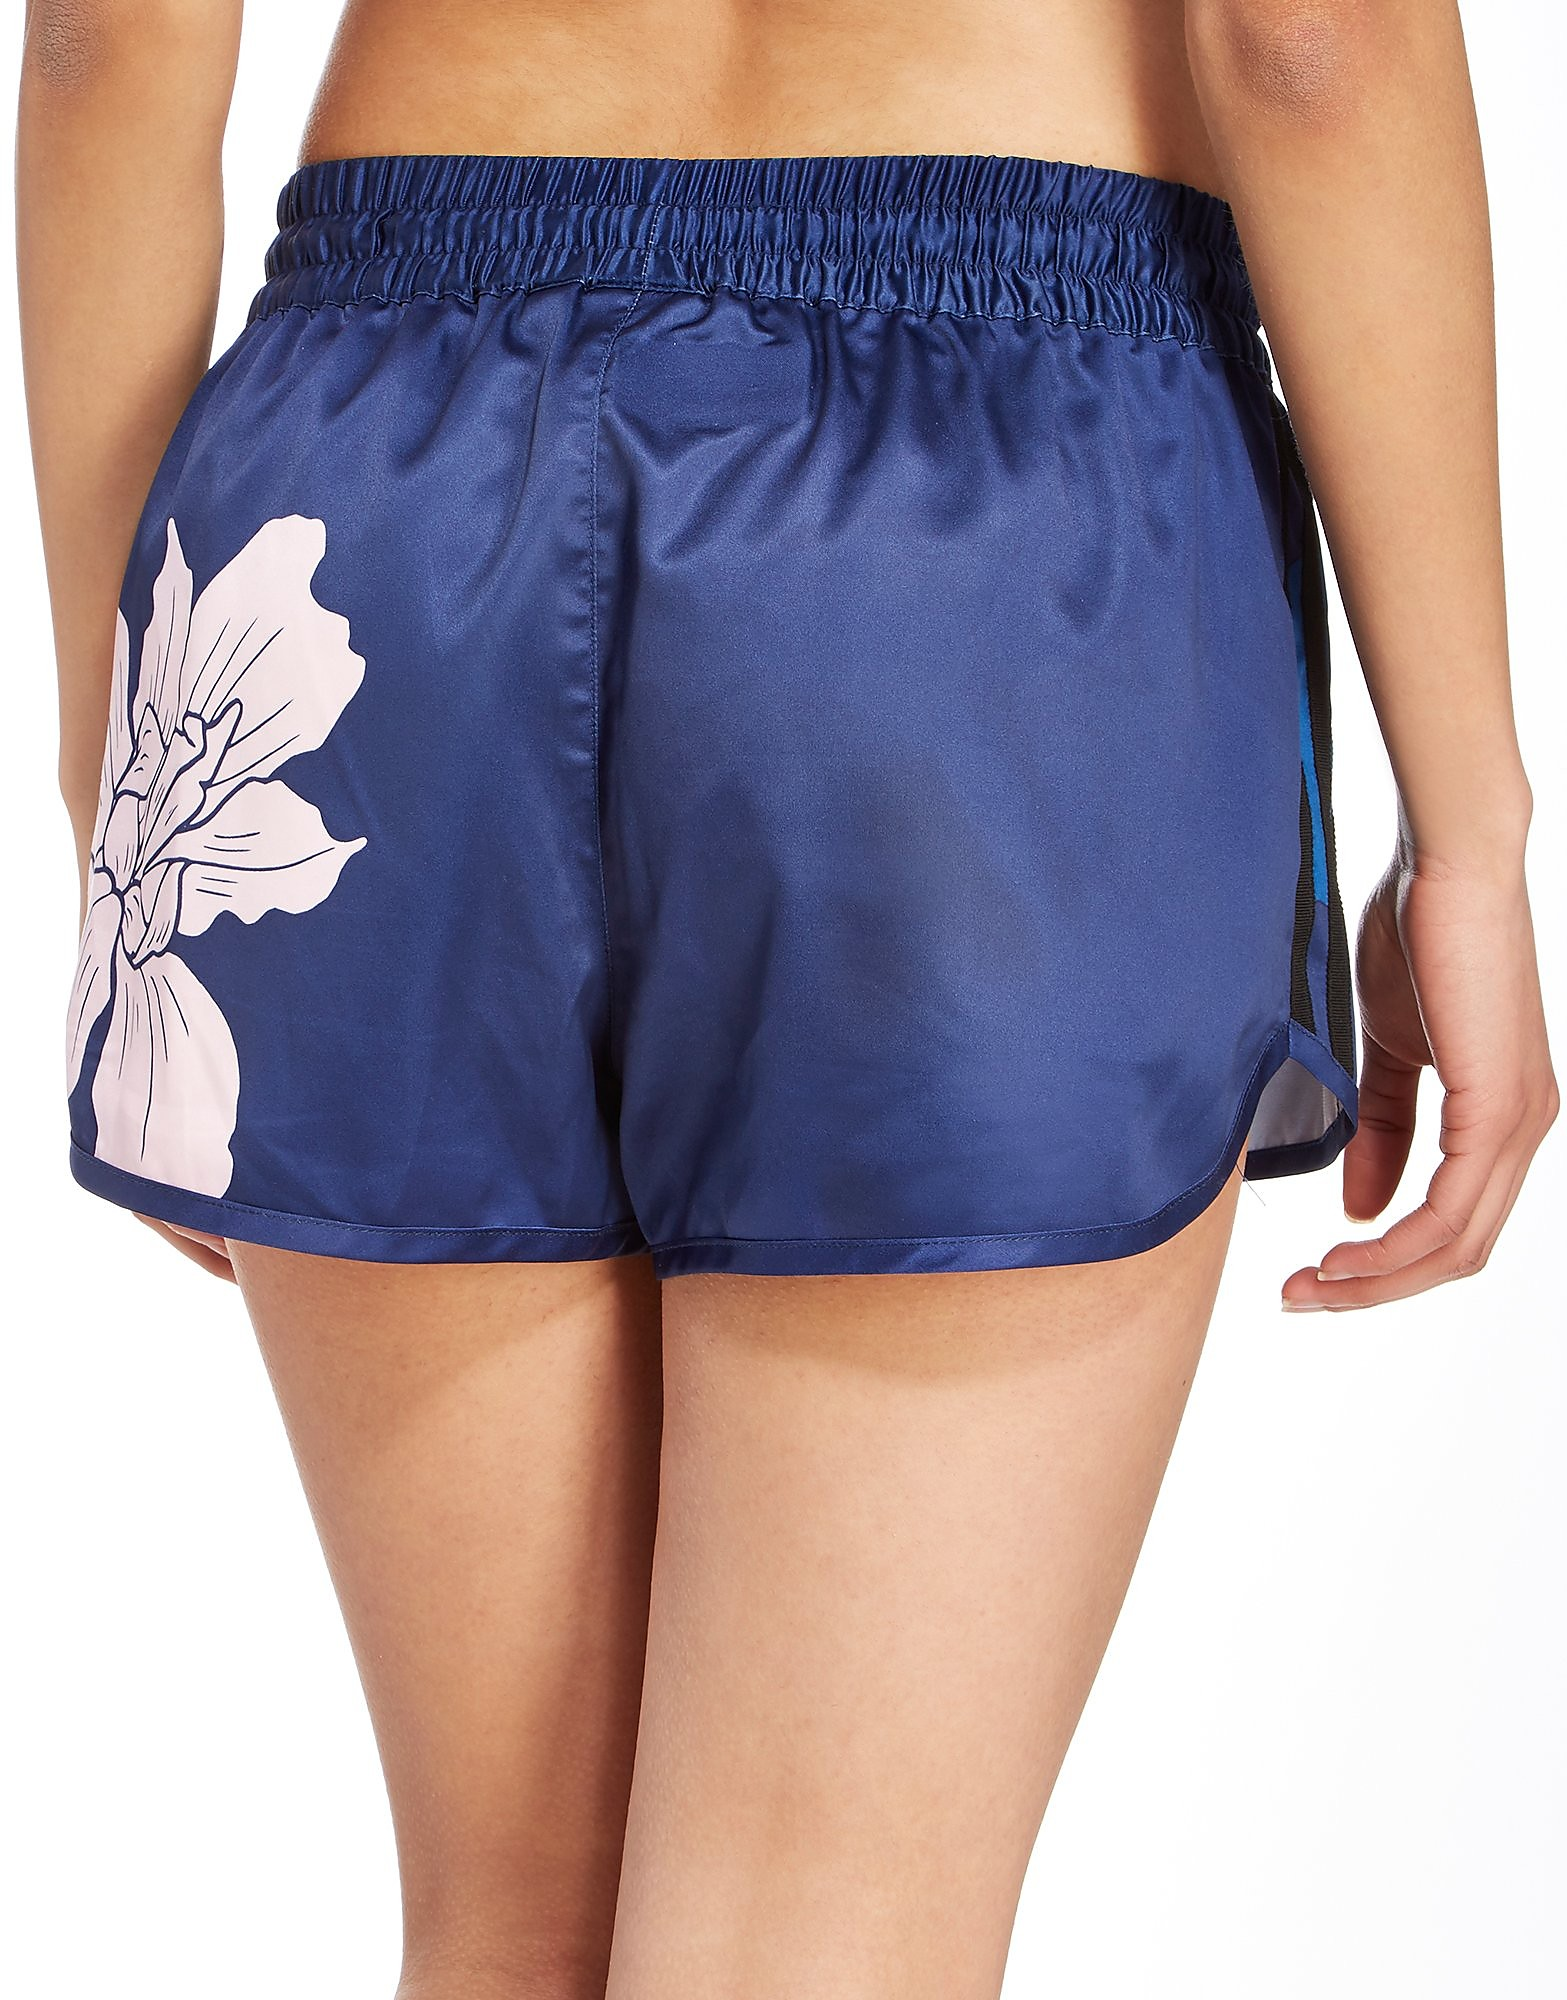 adidas Originals Floral Engraving Running Shorts